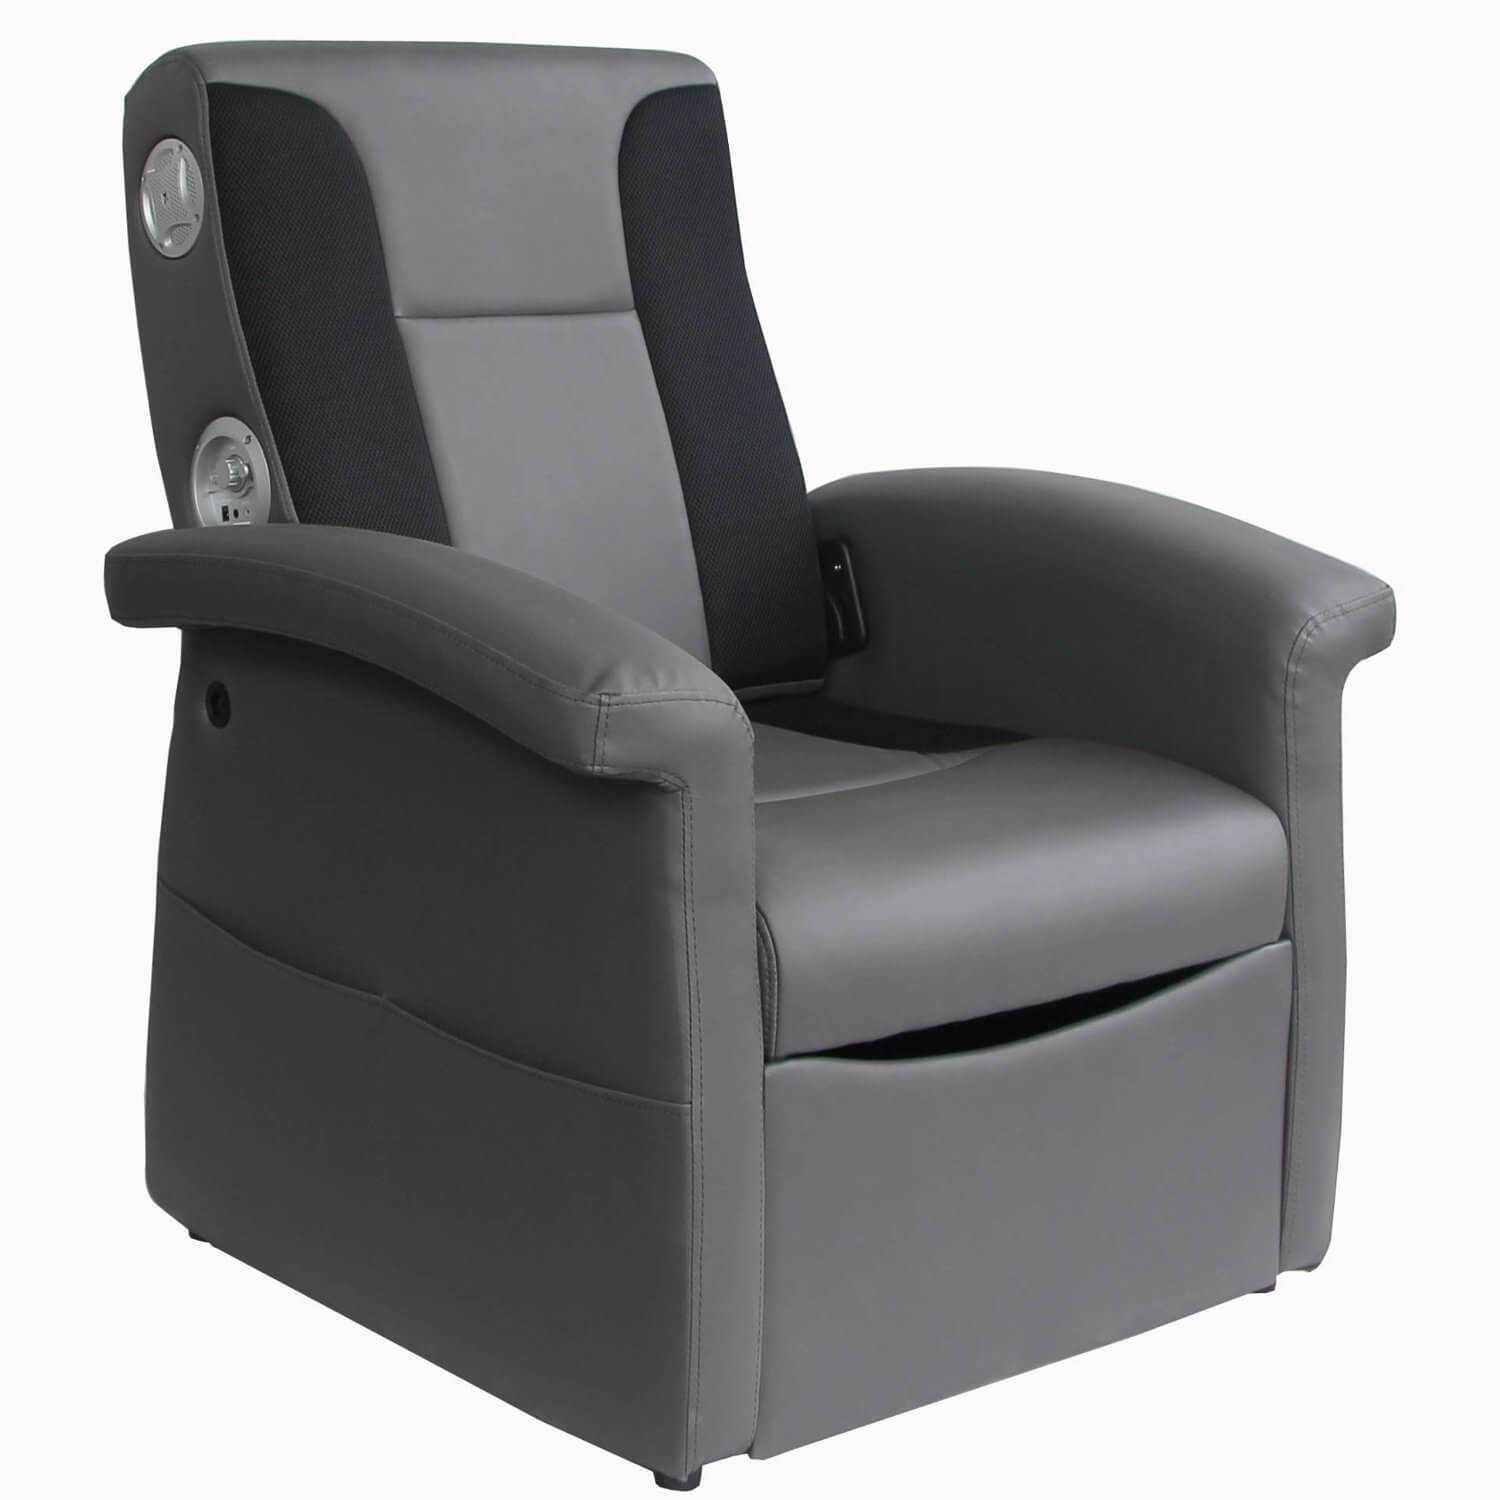 Best Gaming Chairs For Adults - Top 7 Reviews (Jan. 2017) intended for Gaming Sofa Chairs (Image 5 of 15)